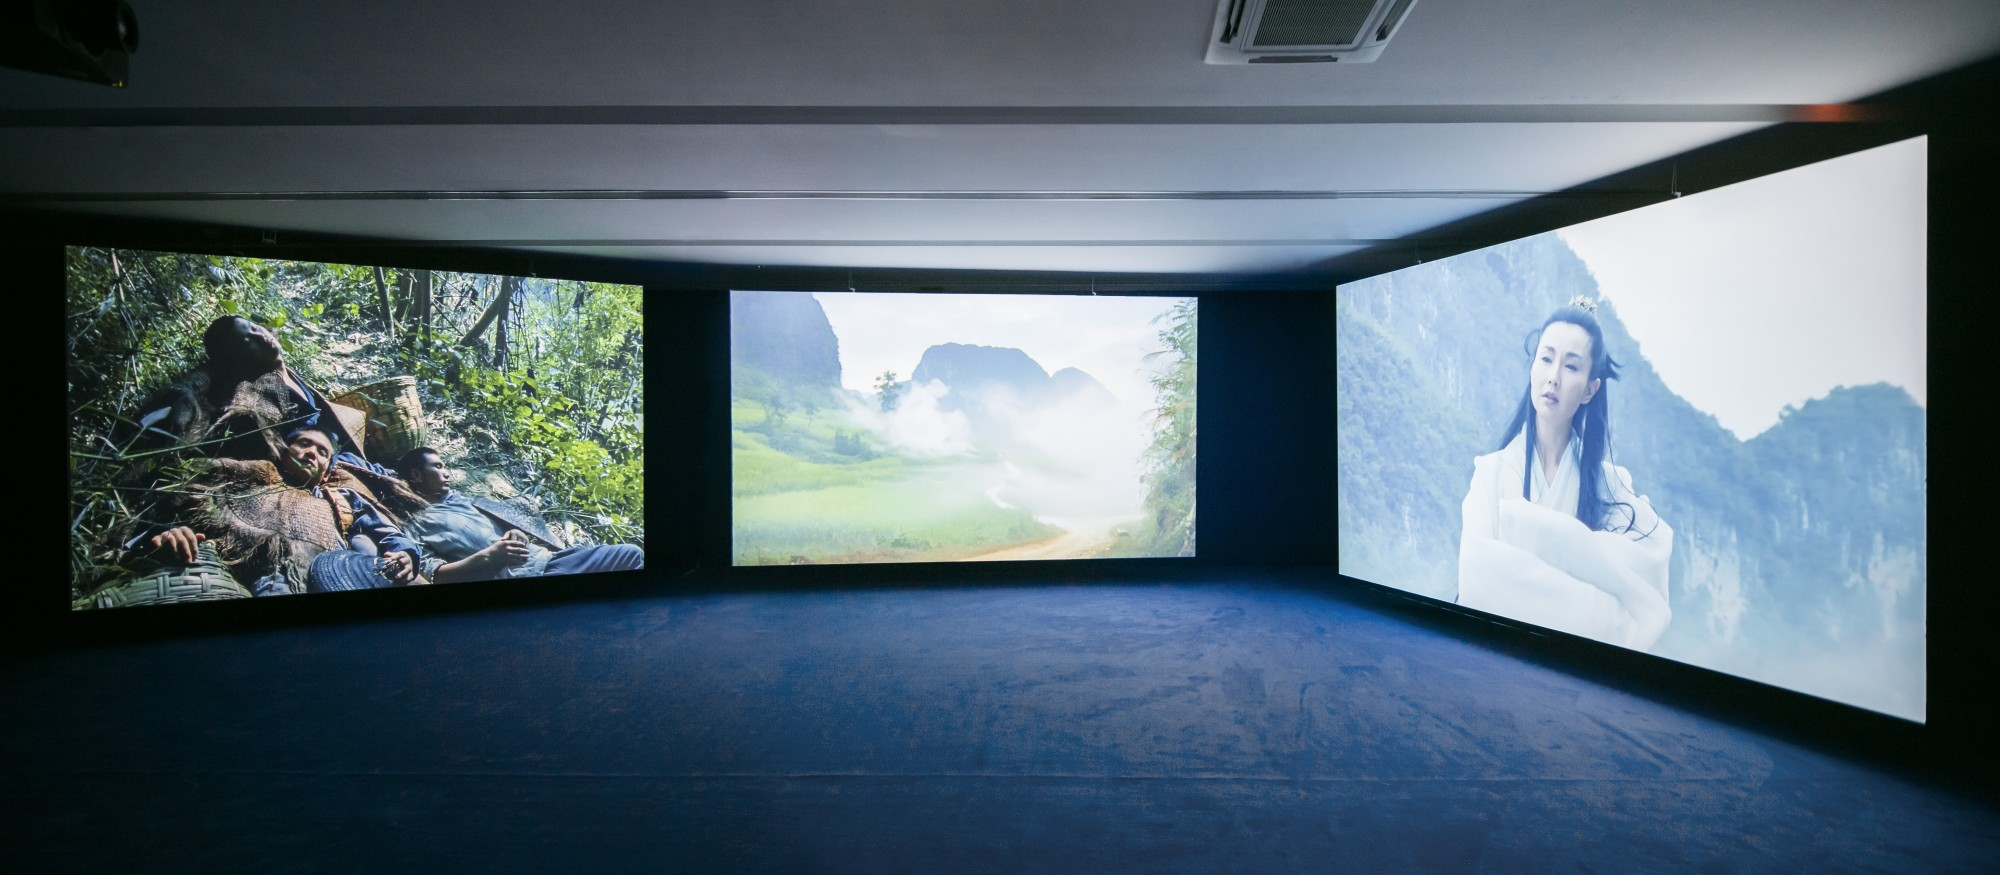 Irreversible Intrusion. K11 Art Foundation, Shanghai, 2016  49'41'', three-screen installation, 35mm film transferred to digital, colour, 9.2 sound